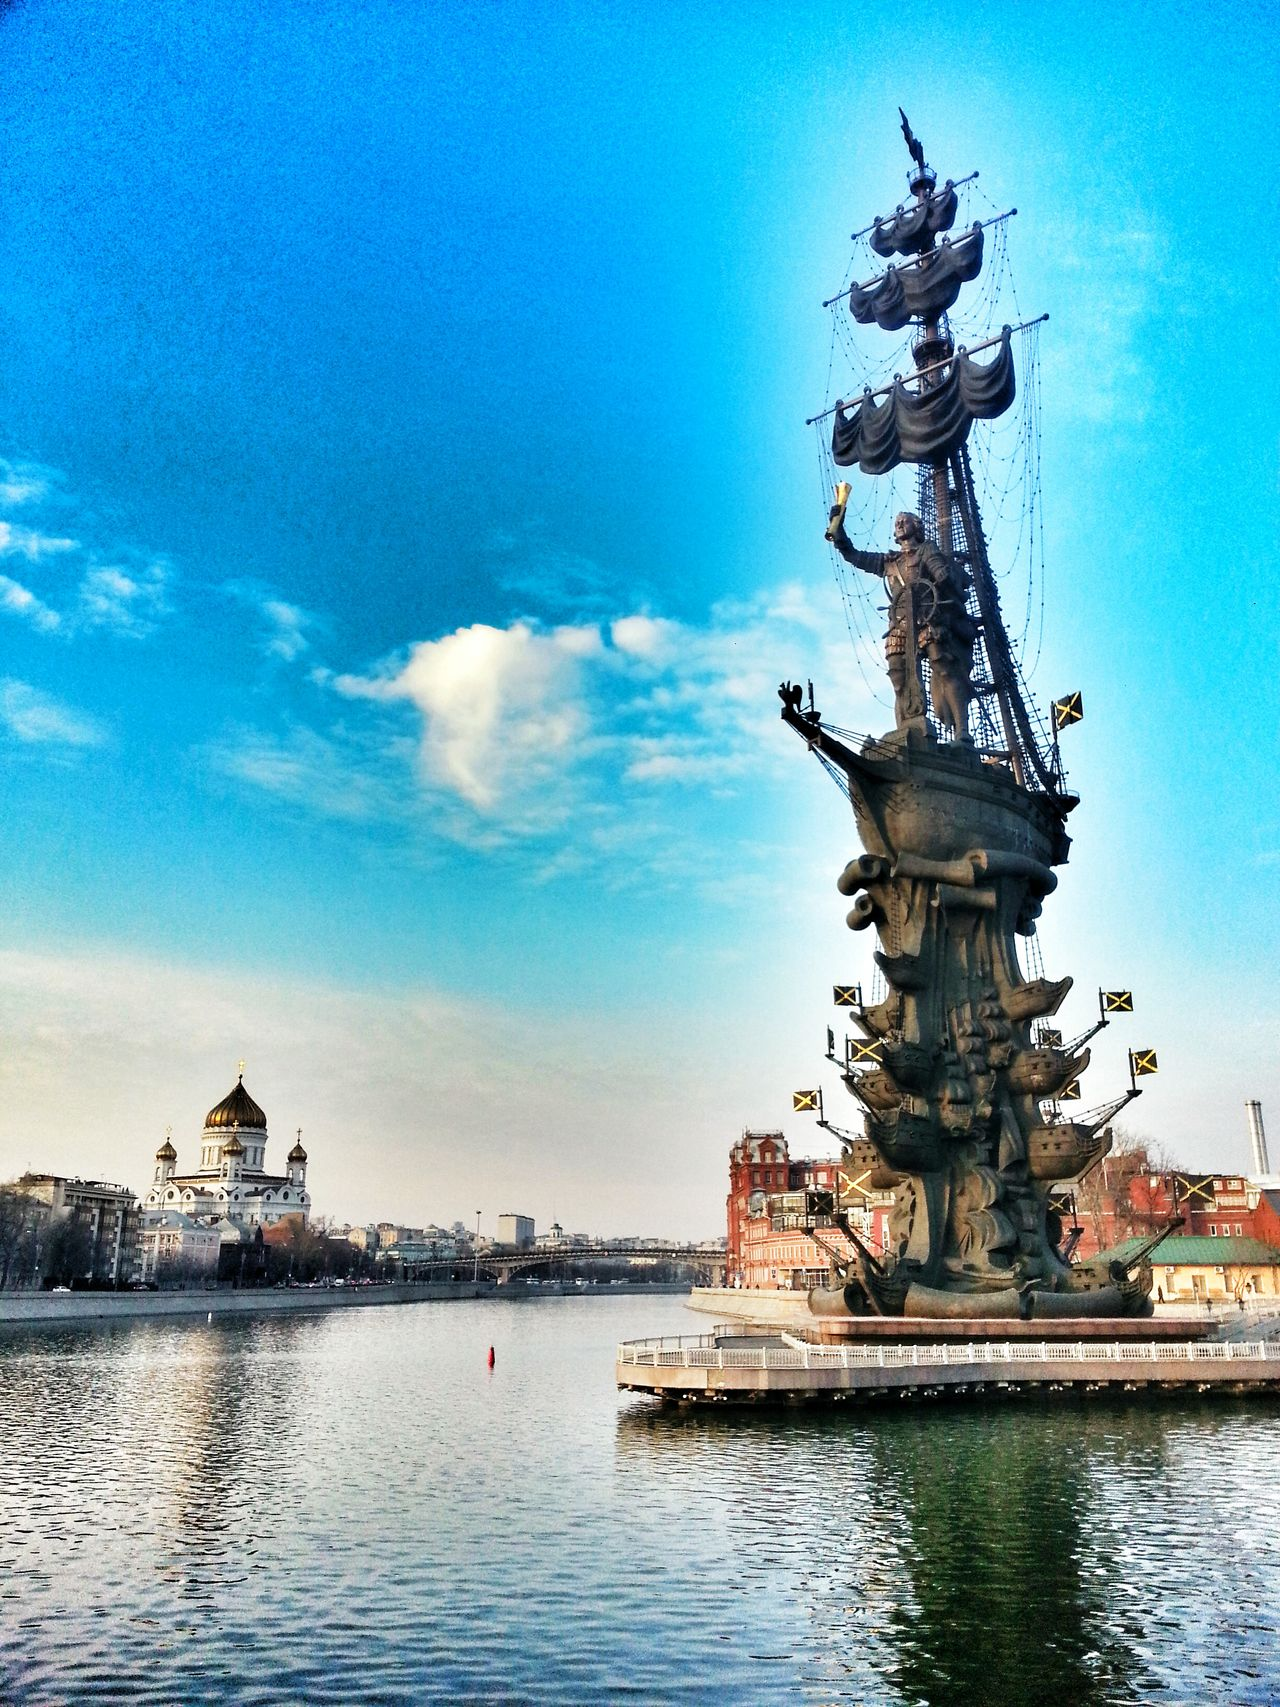 Msk Moscow City MyPhotography Water_collection River Travel Travelphotography Peter1 Travelling Photography Water Reflections EyeEm Best Shots Travelingtheworld  Travelingram Travelgram Travel Photography Travelling Travel Destinations Trip Traveller Hello World Russia